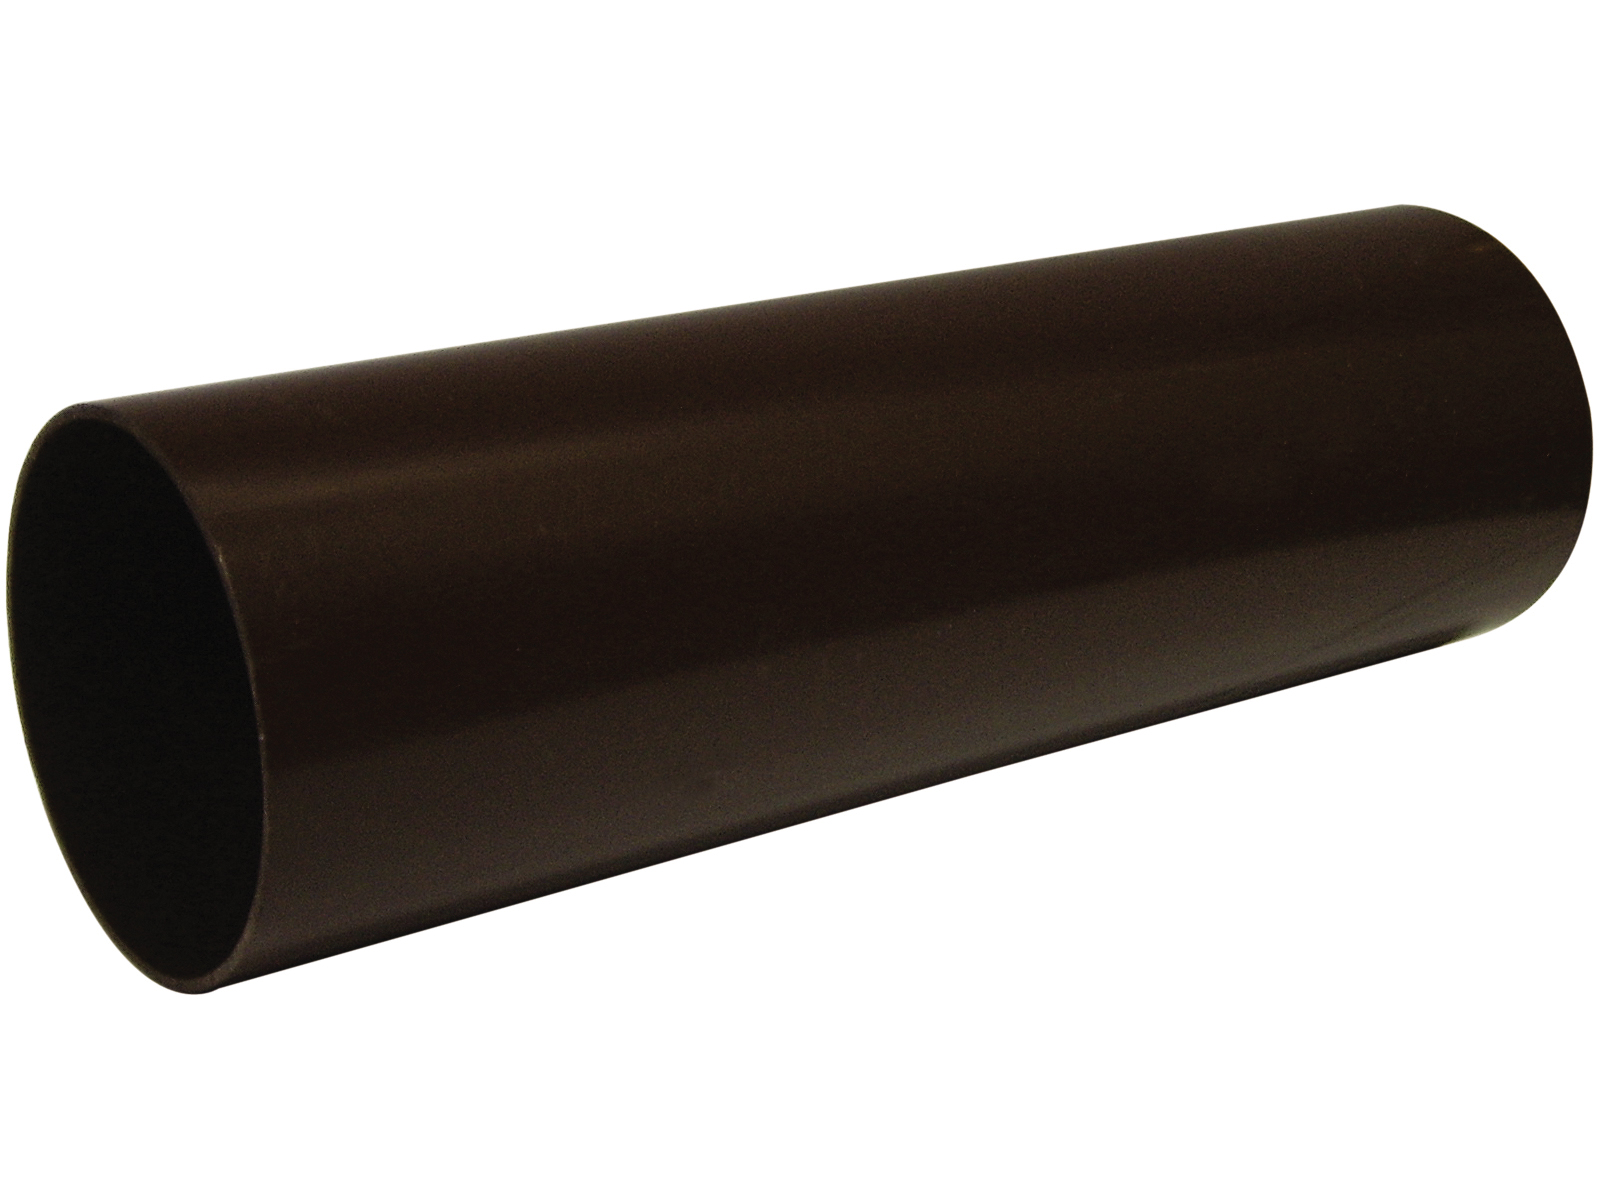 FLOPLAST 68MM ROUND DOWNPIPE - RP2.5 PIPE 2.5M - BROWN